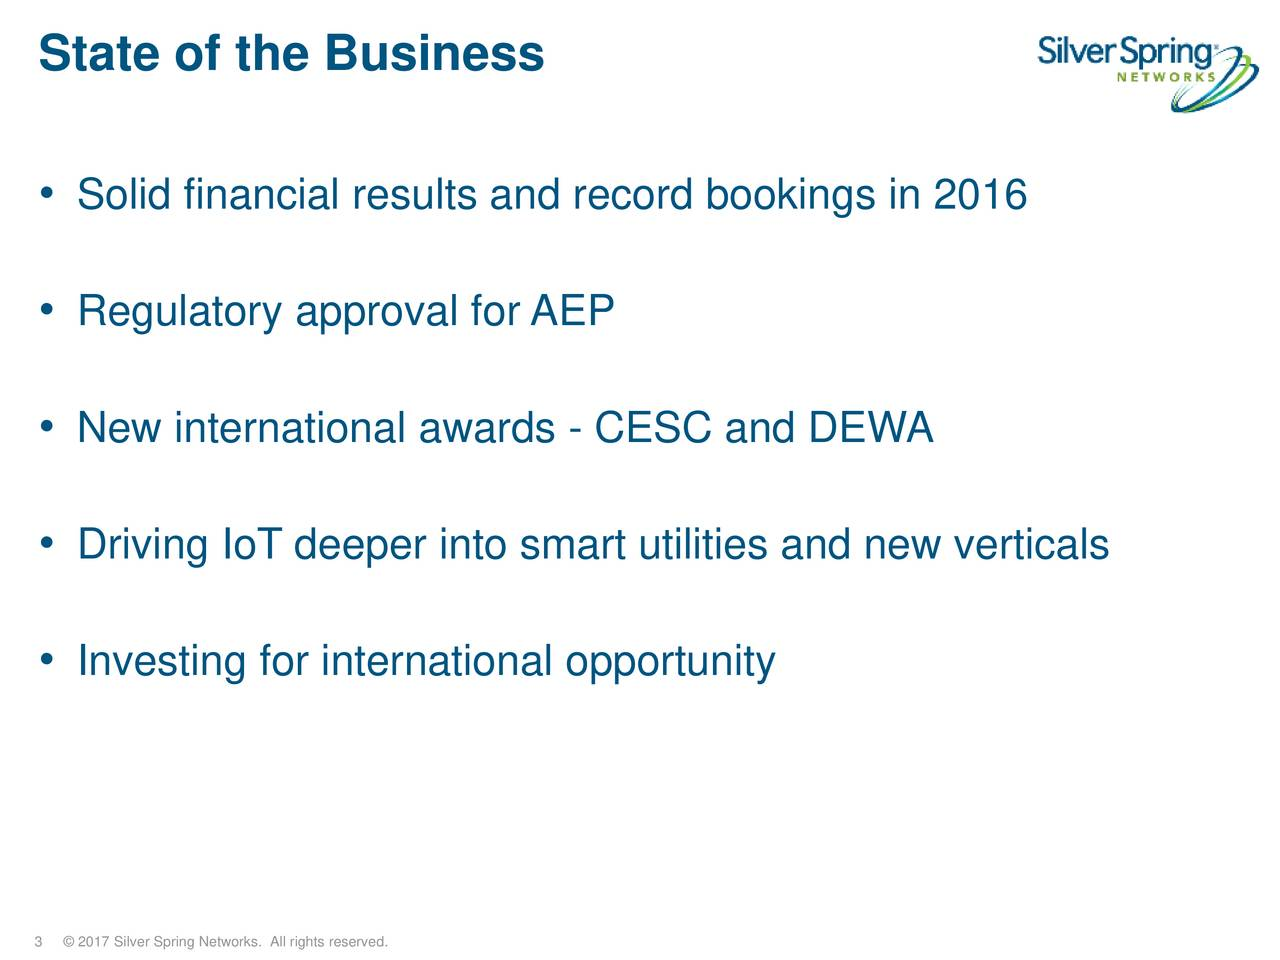 Solid financial results and record bookings in 2016 Regulatory approval for AEP New international awards - CESC and DEWA Driving IoT deeper into smart utilities and new verticals Investing for international opportunity